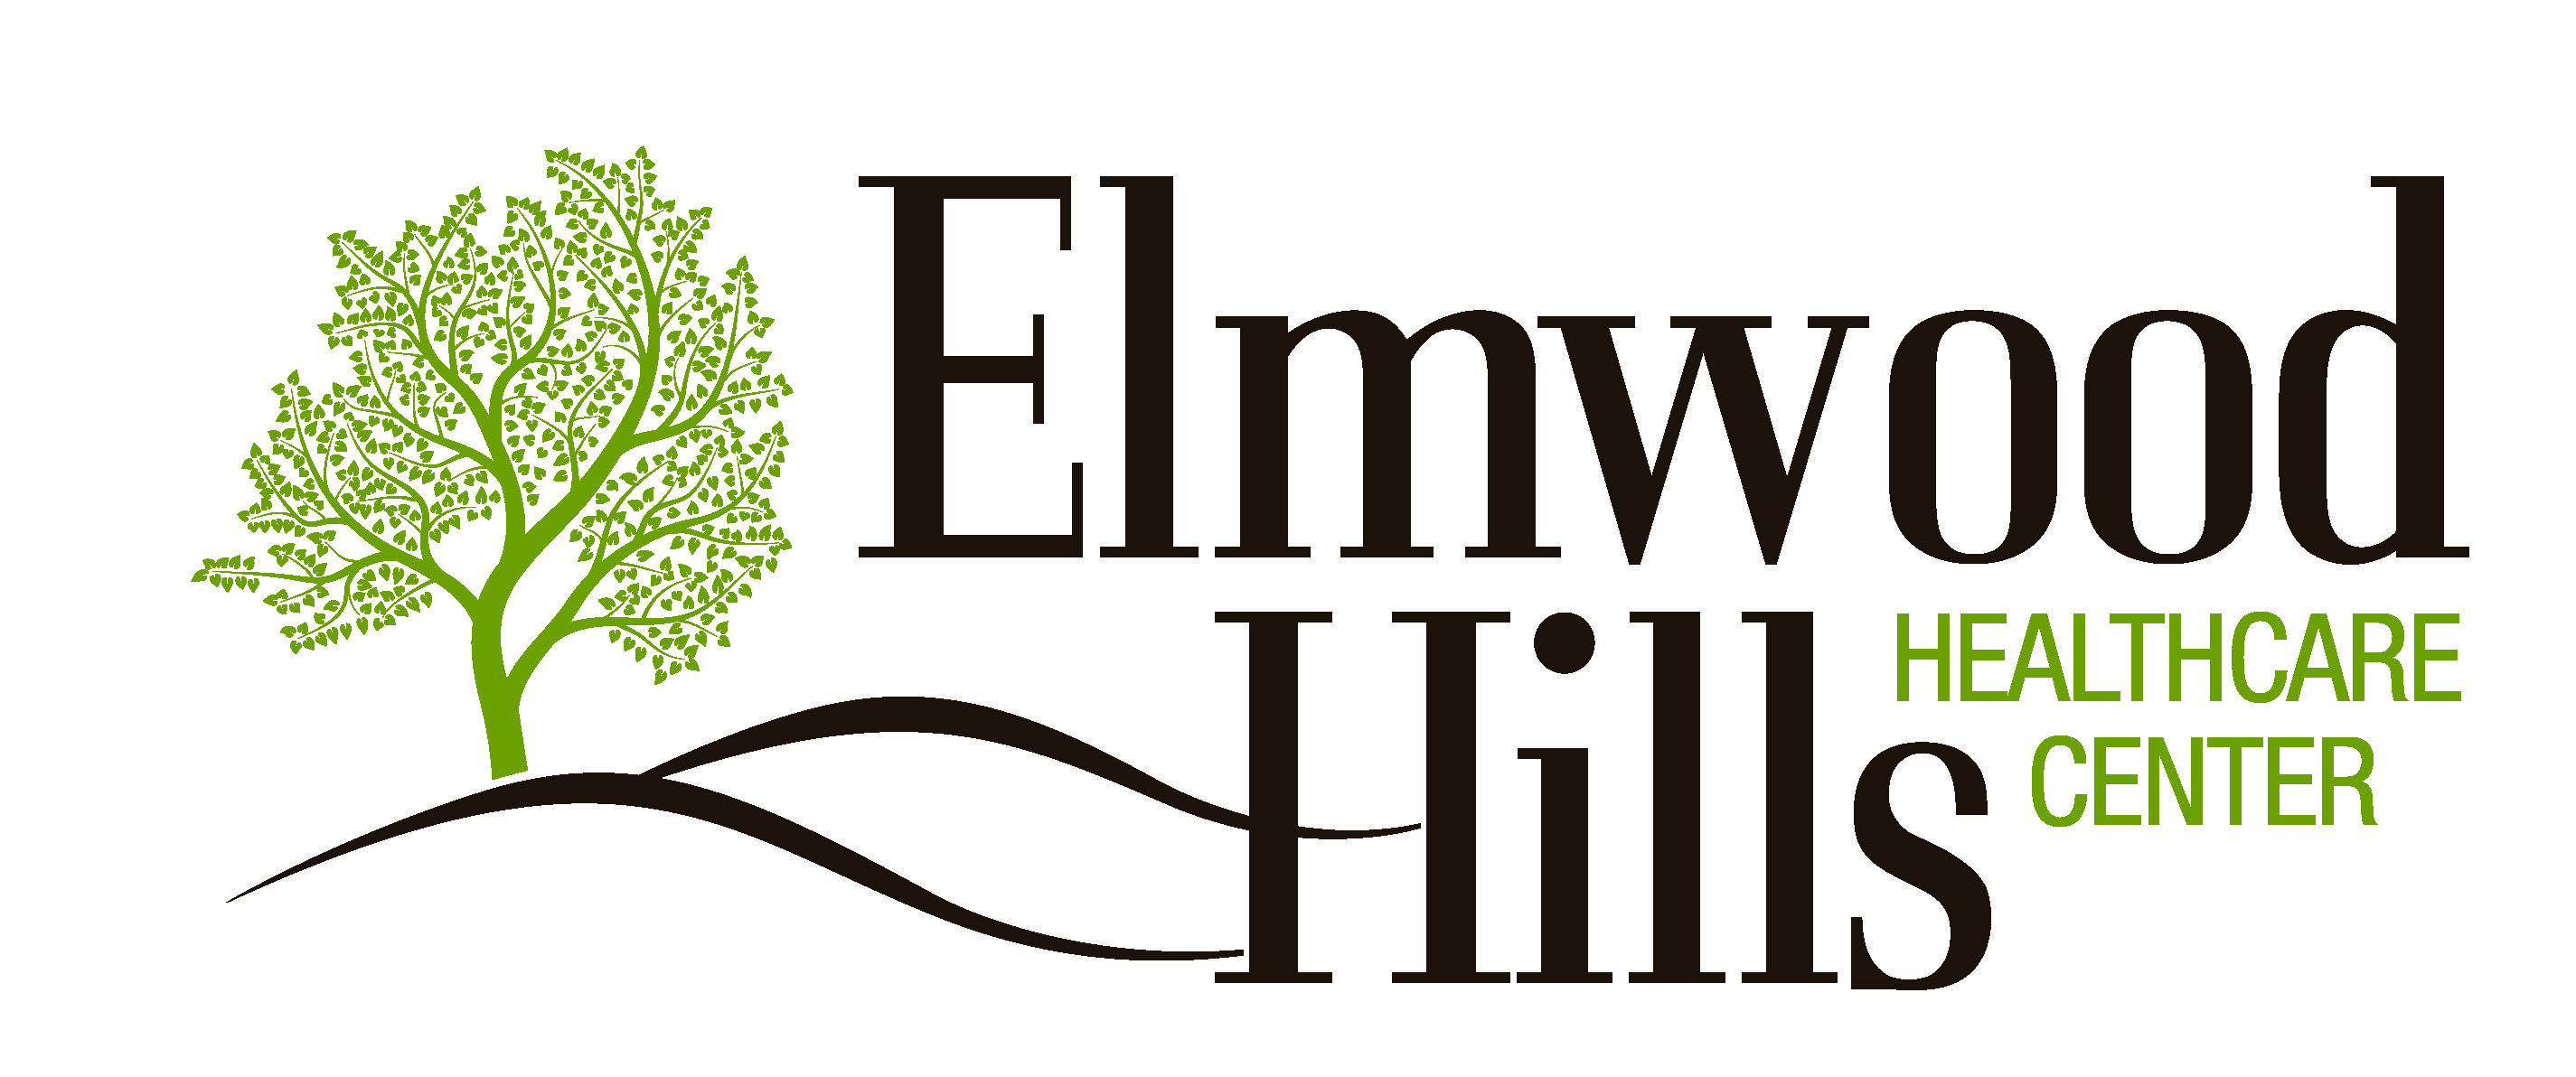 Elmwood Hills Healthcare Center